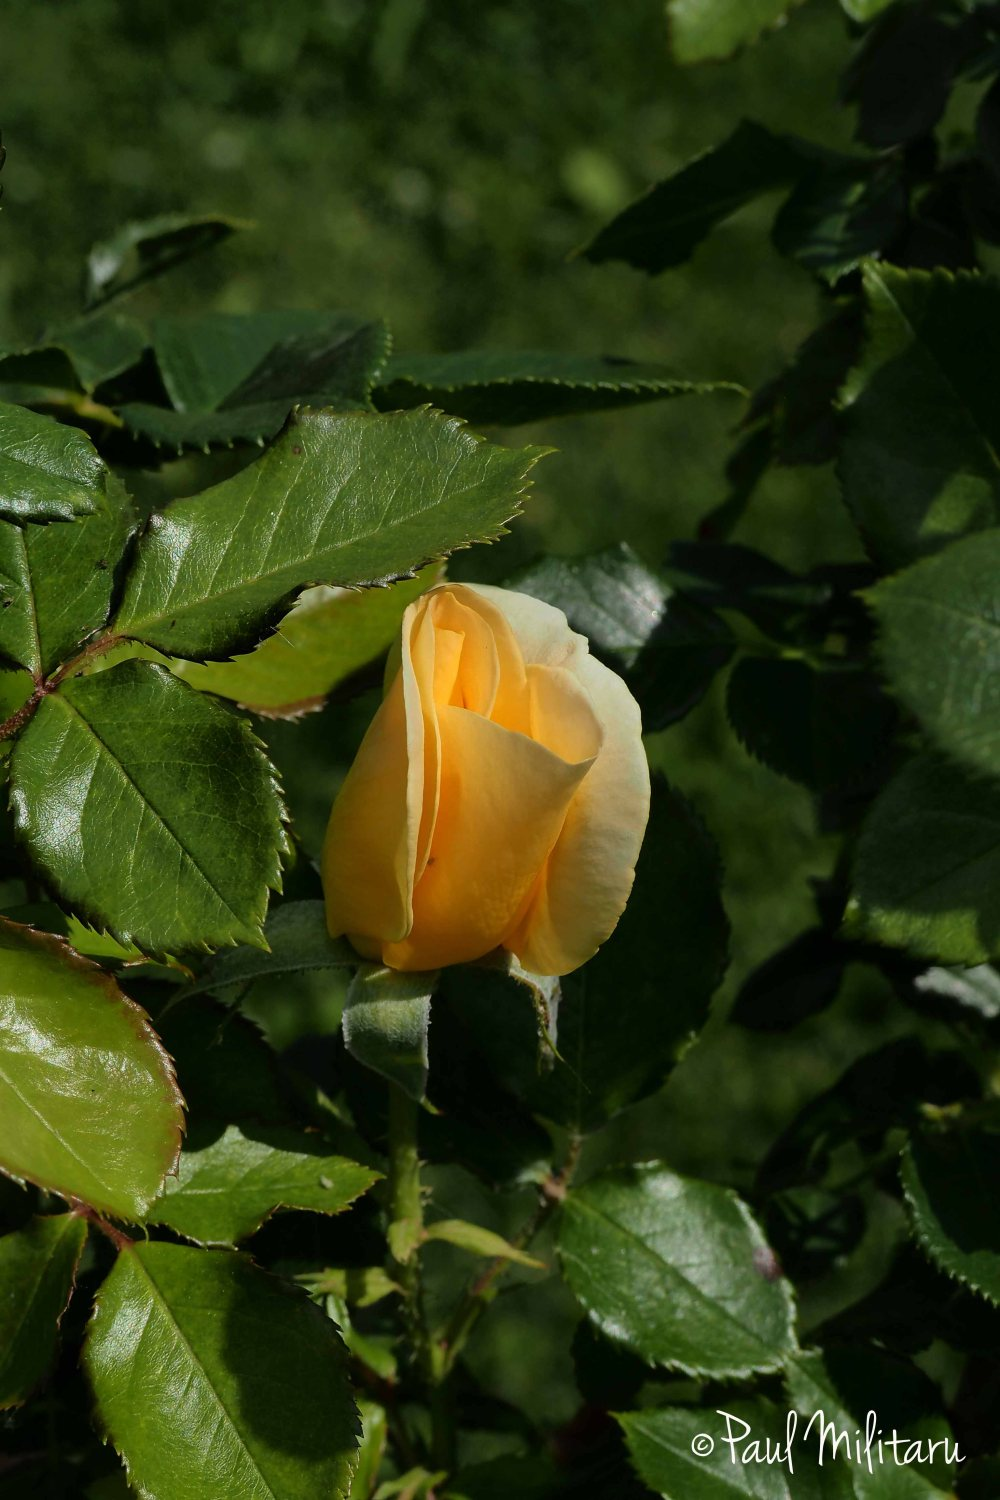 yellow bud rose in bloom